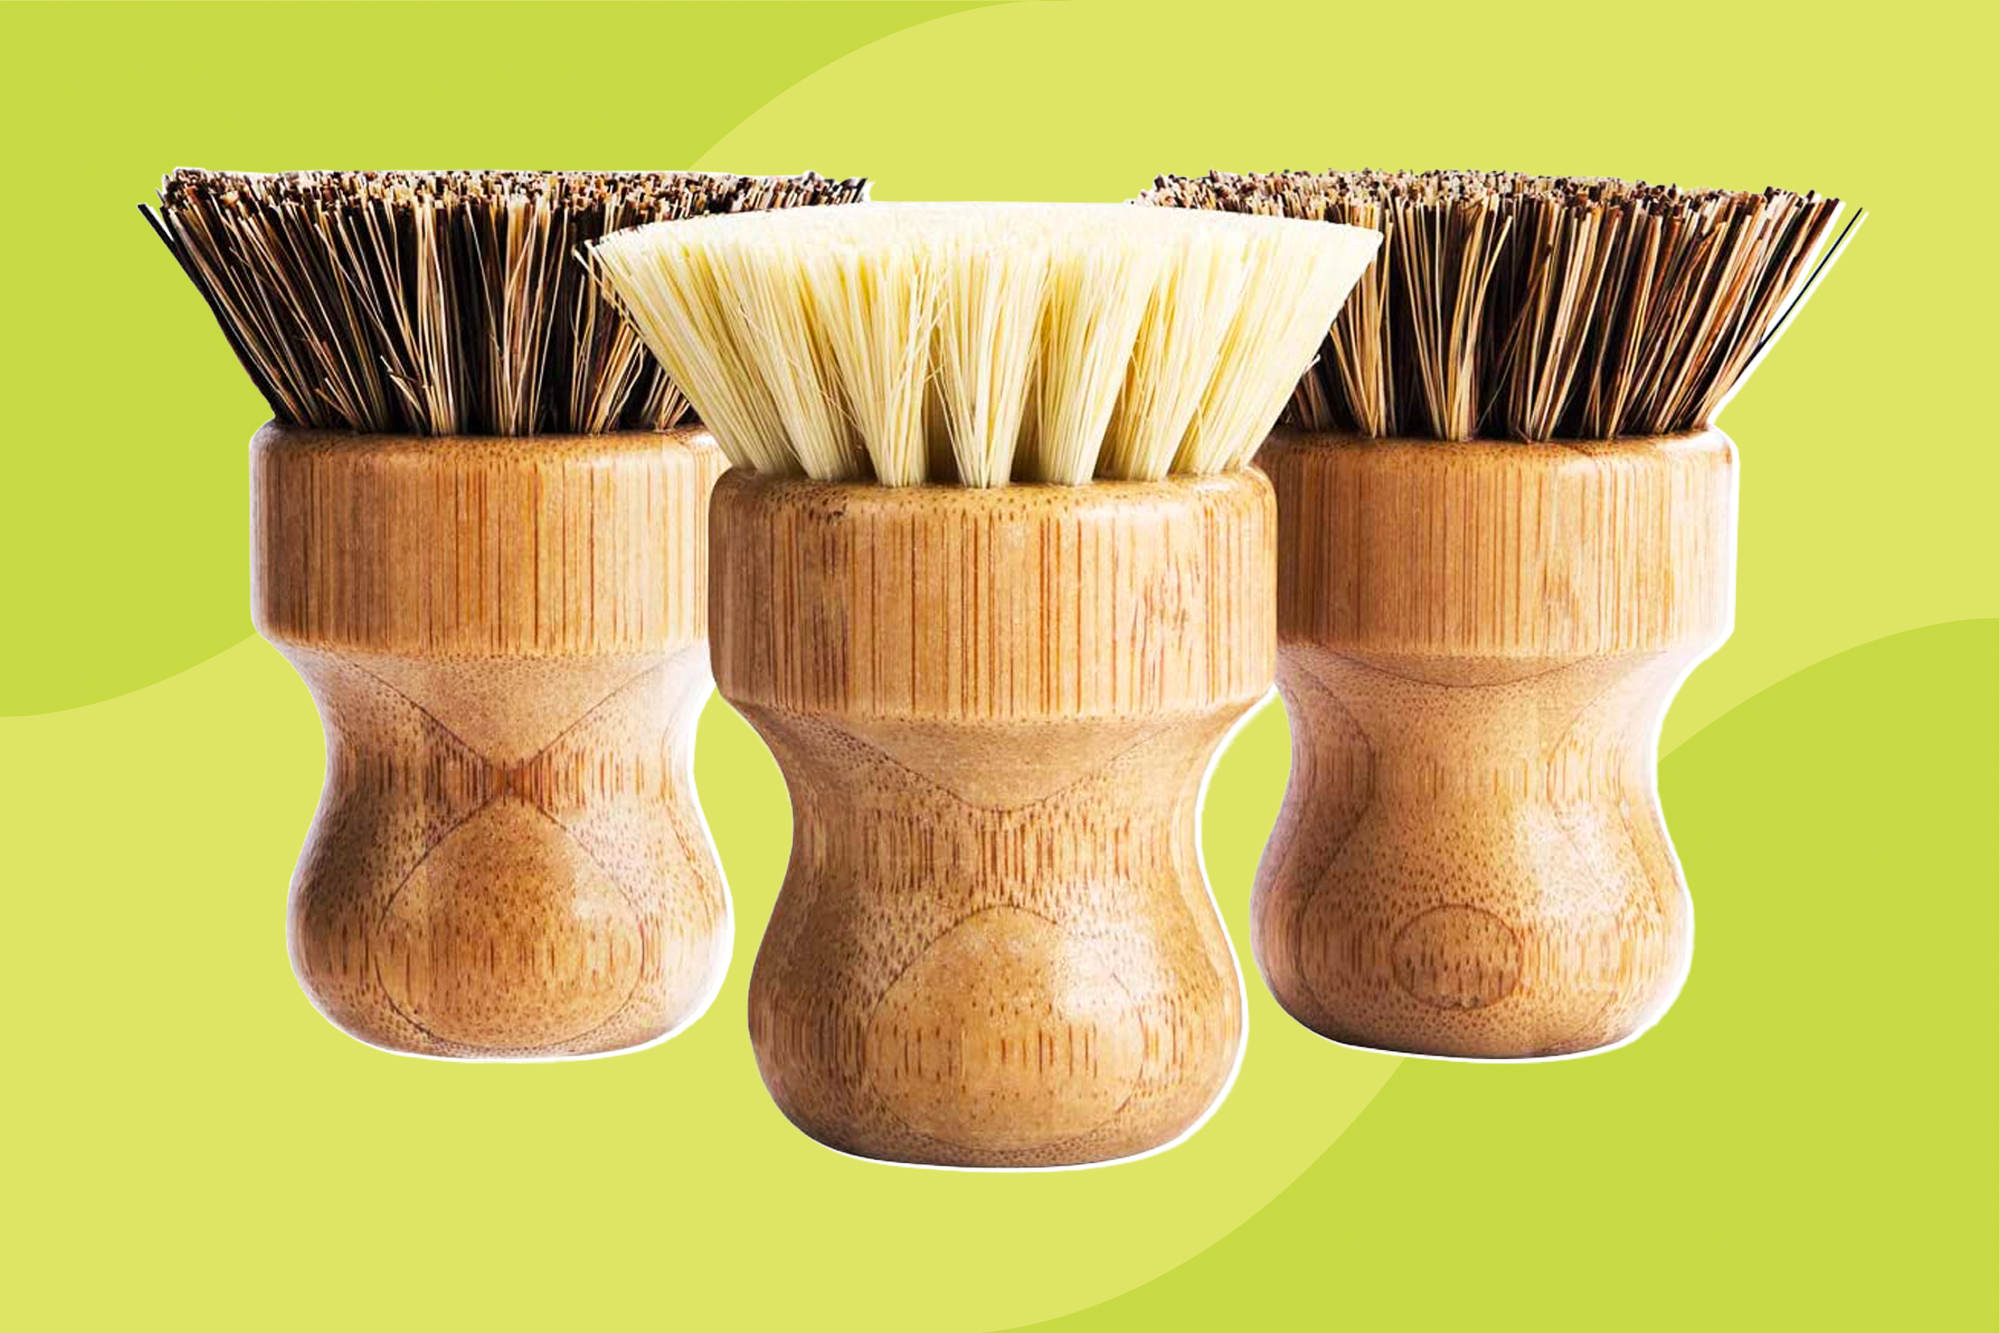 Palm Pot Brush- Bamboo Round 3 Packs Mini Dish Brush Natural Scrub Brush Durable Scrubber Cleaning Kit with Union Fiber and Tampico Fiber for Cleaning Pots